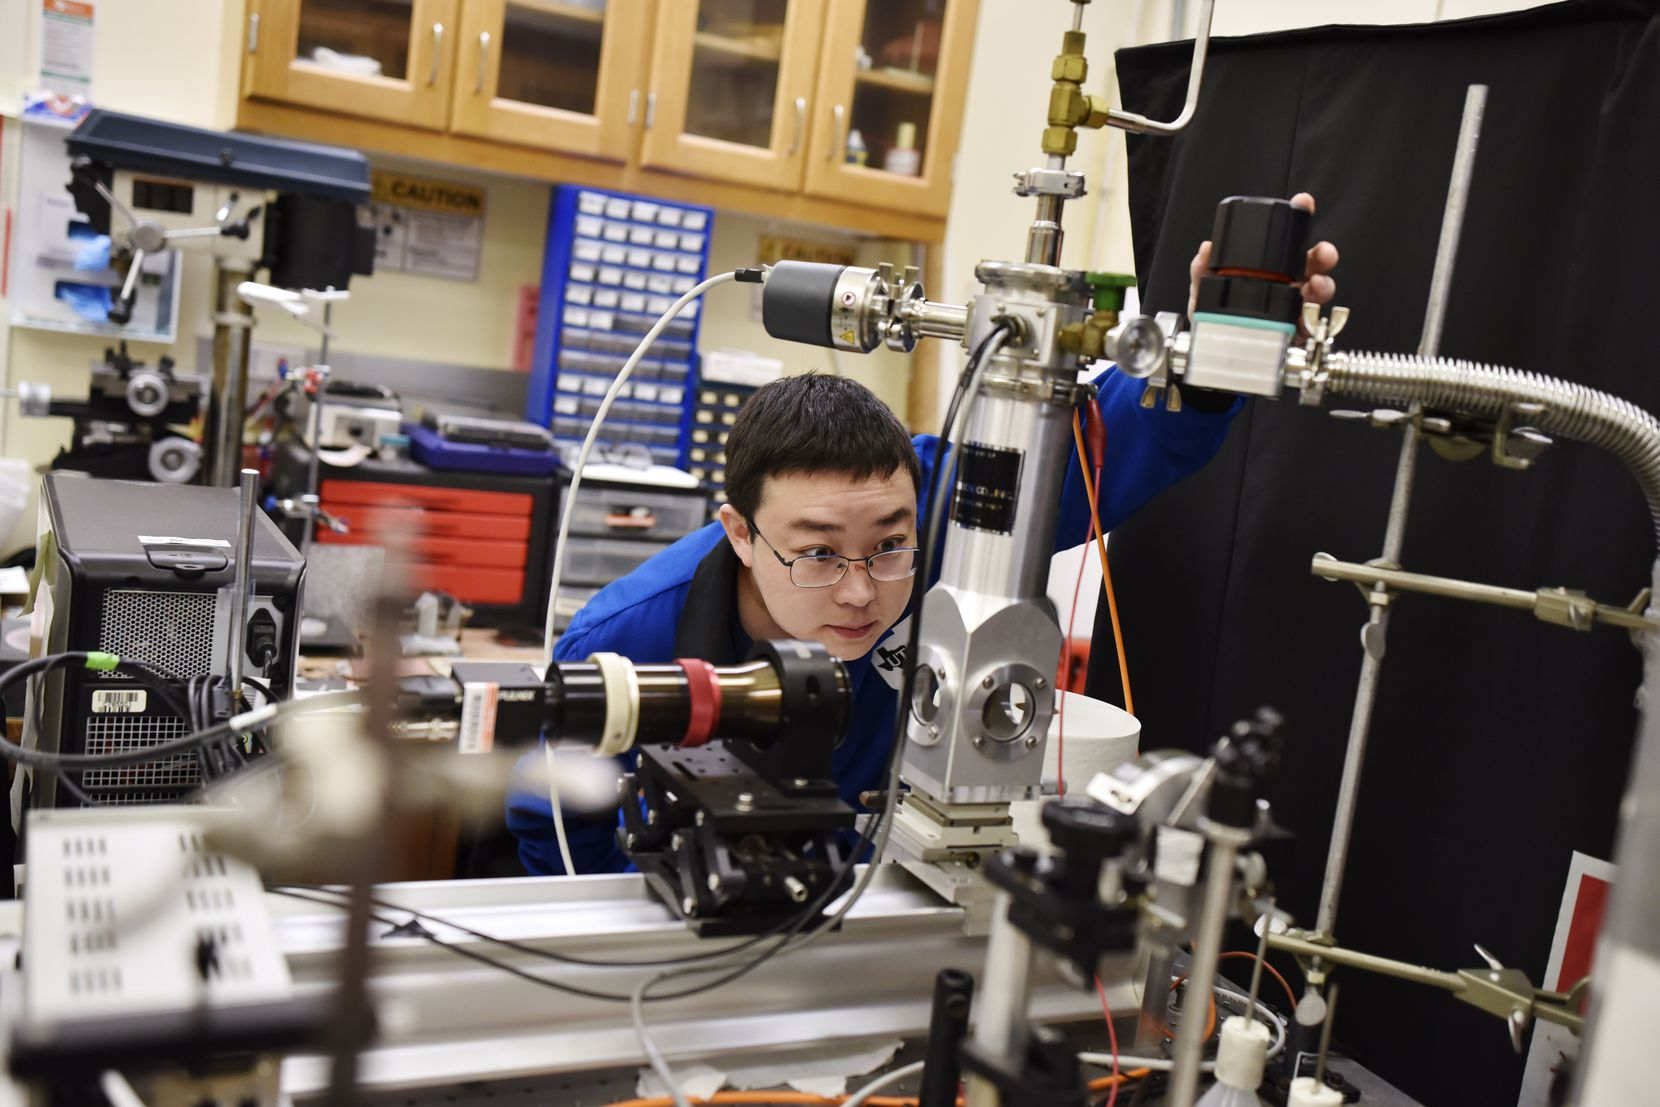 Graduate student Zhong Wang inspects equipment and devices that are used to transfer heat at the Nano Tech Institute lab on the campus of UTD in Richardson on Oct. 24, 2019.